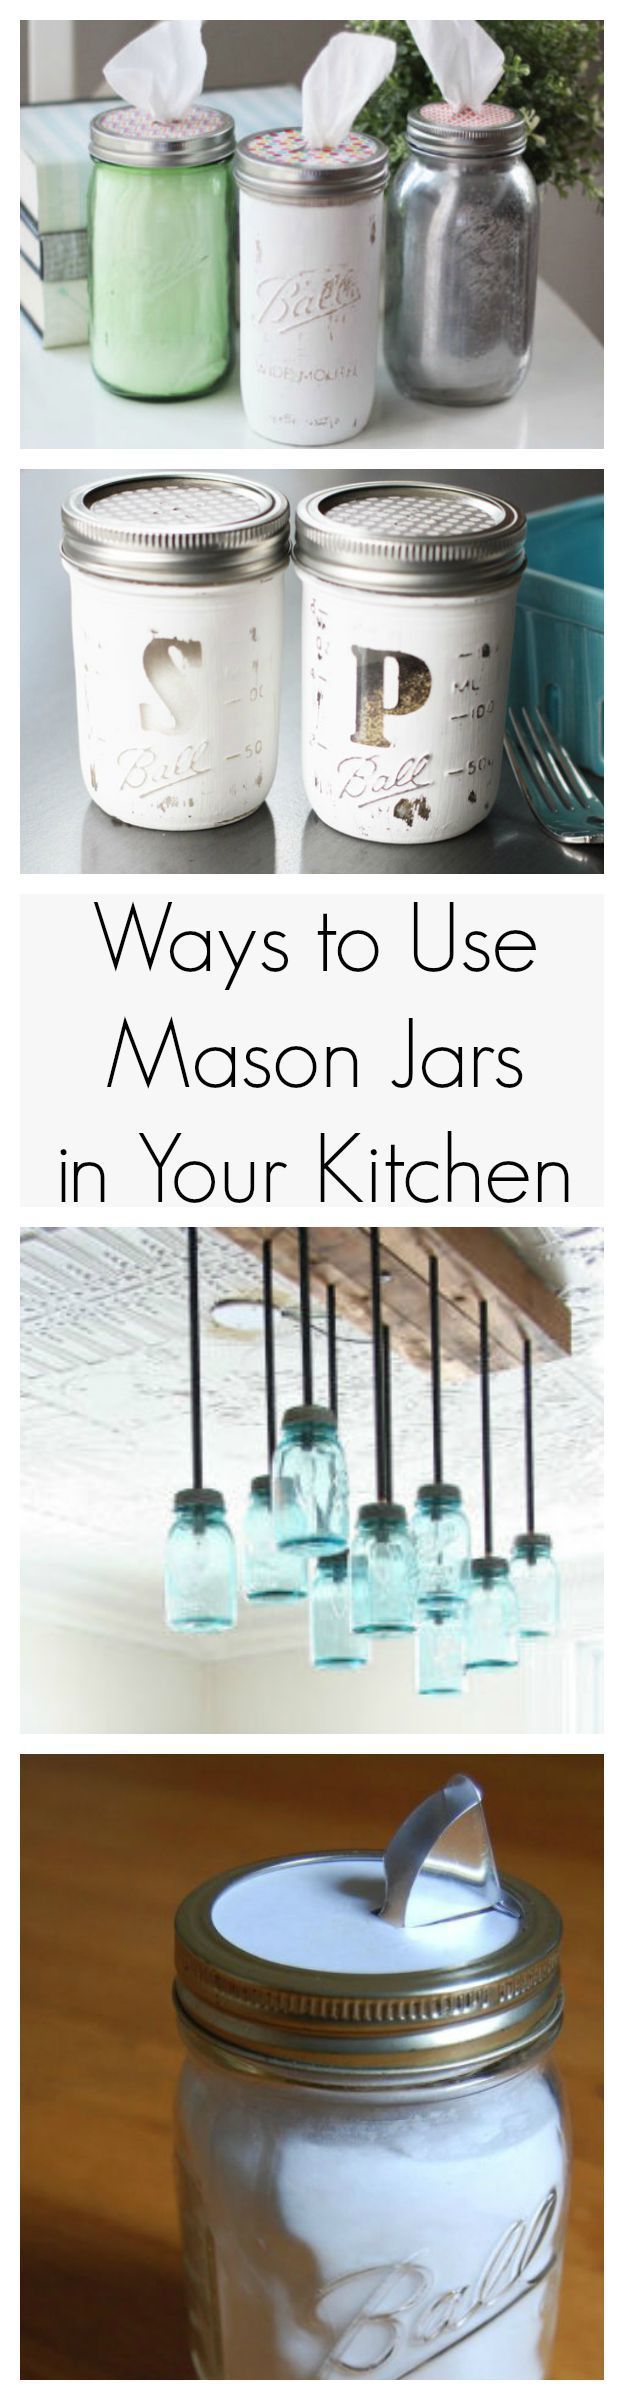 Crafts With Mason Jars Best 25 Mason Jar Kitchen Ideas On Pinterest Mason Jar Kitchen